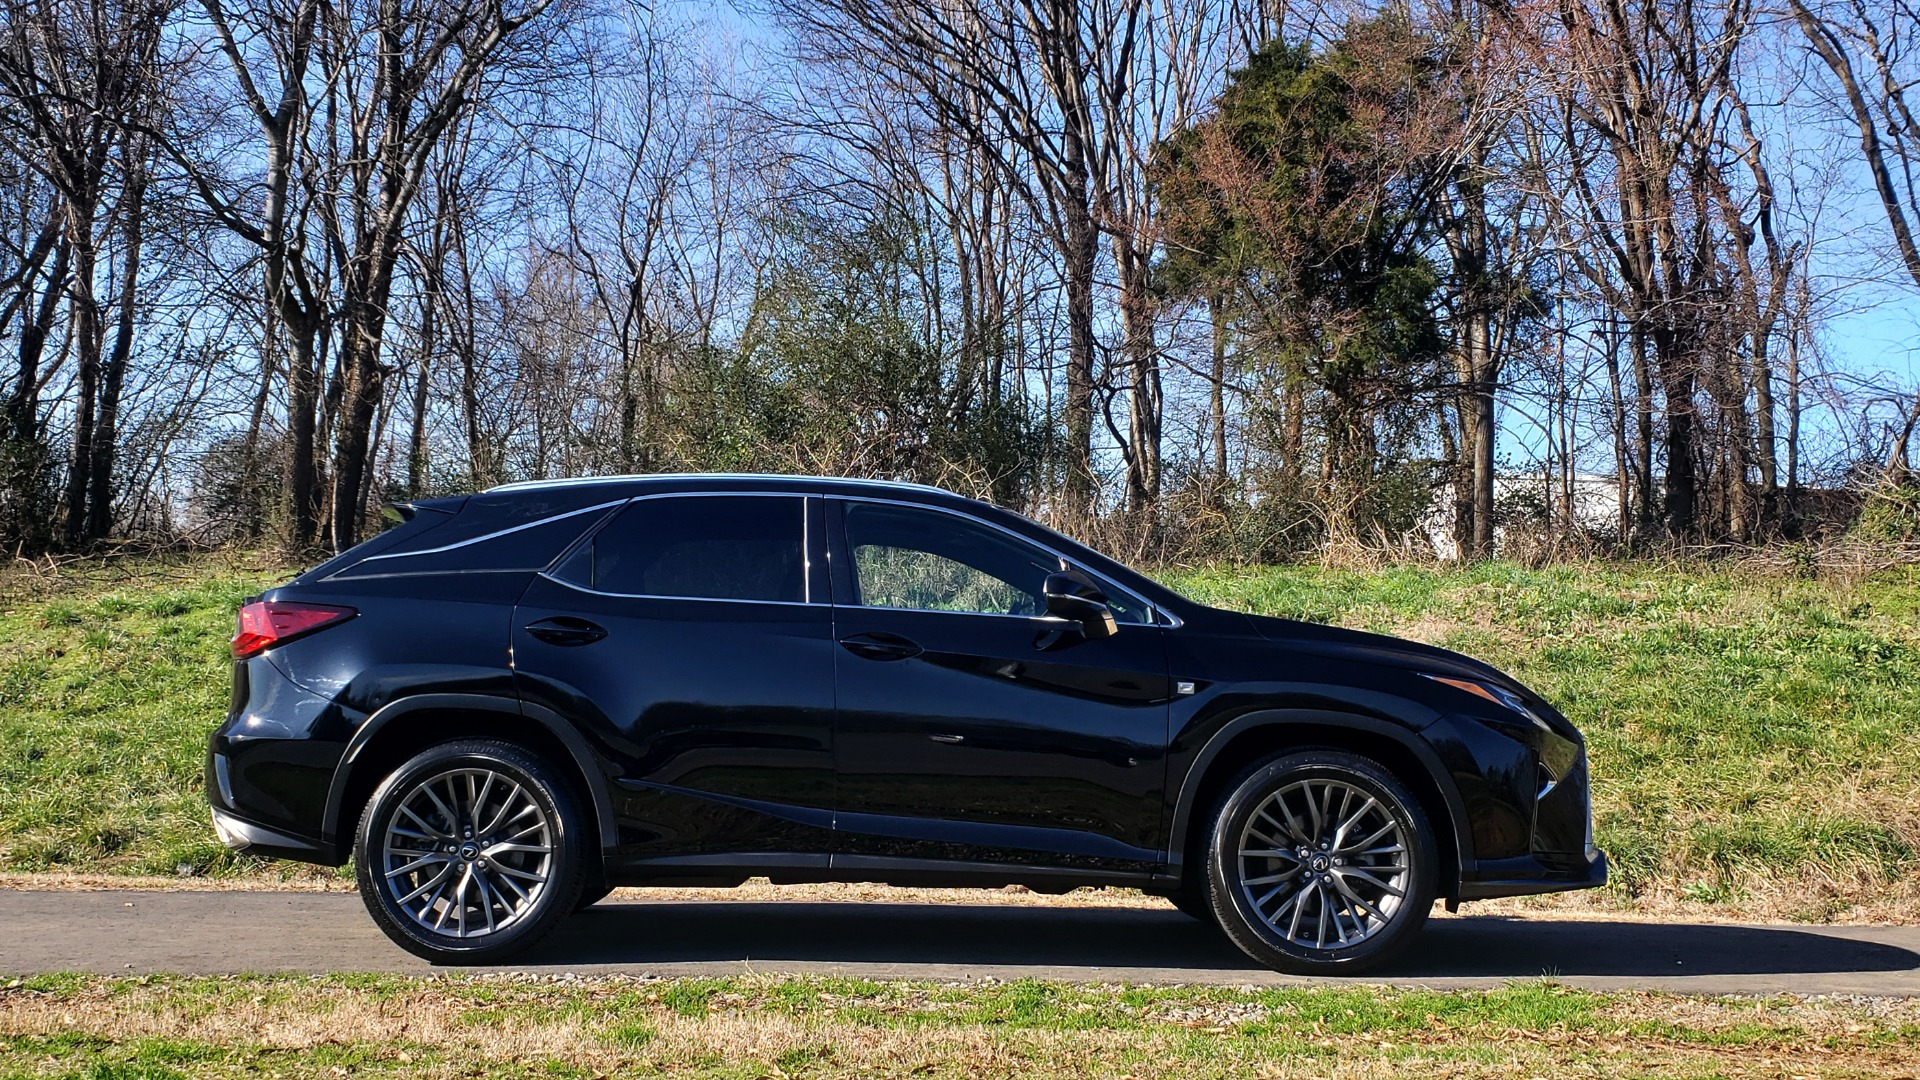 Used 2017 Lexus RX350 AWD F-SPORT / NAV / SUNROOF / BSM / PARK ASST / TOWING / REARVIE for sale Sold at Formula Imports in Charlotte NC 28227 5